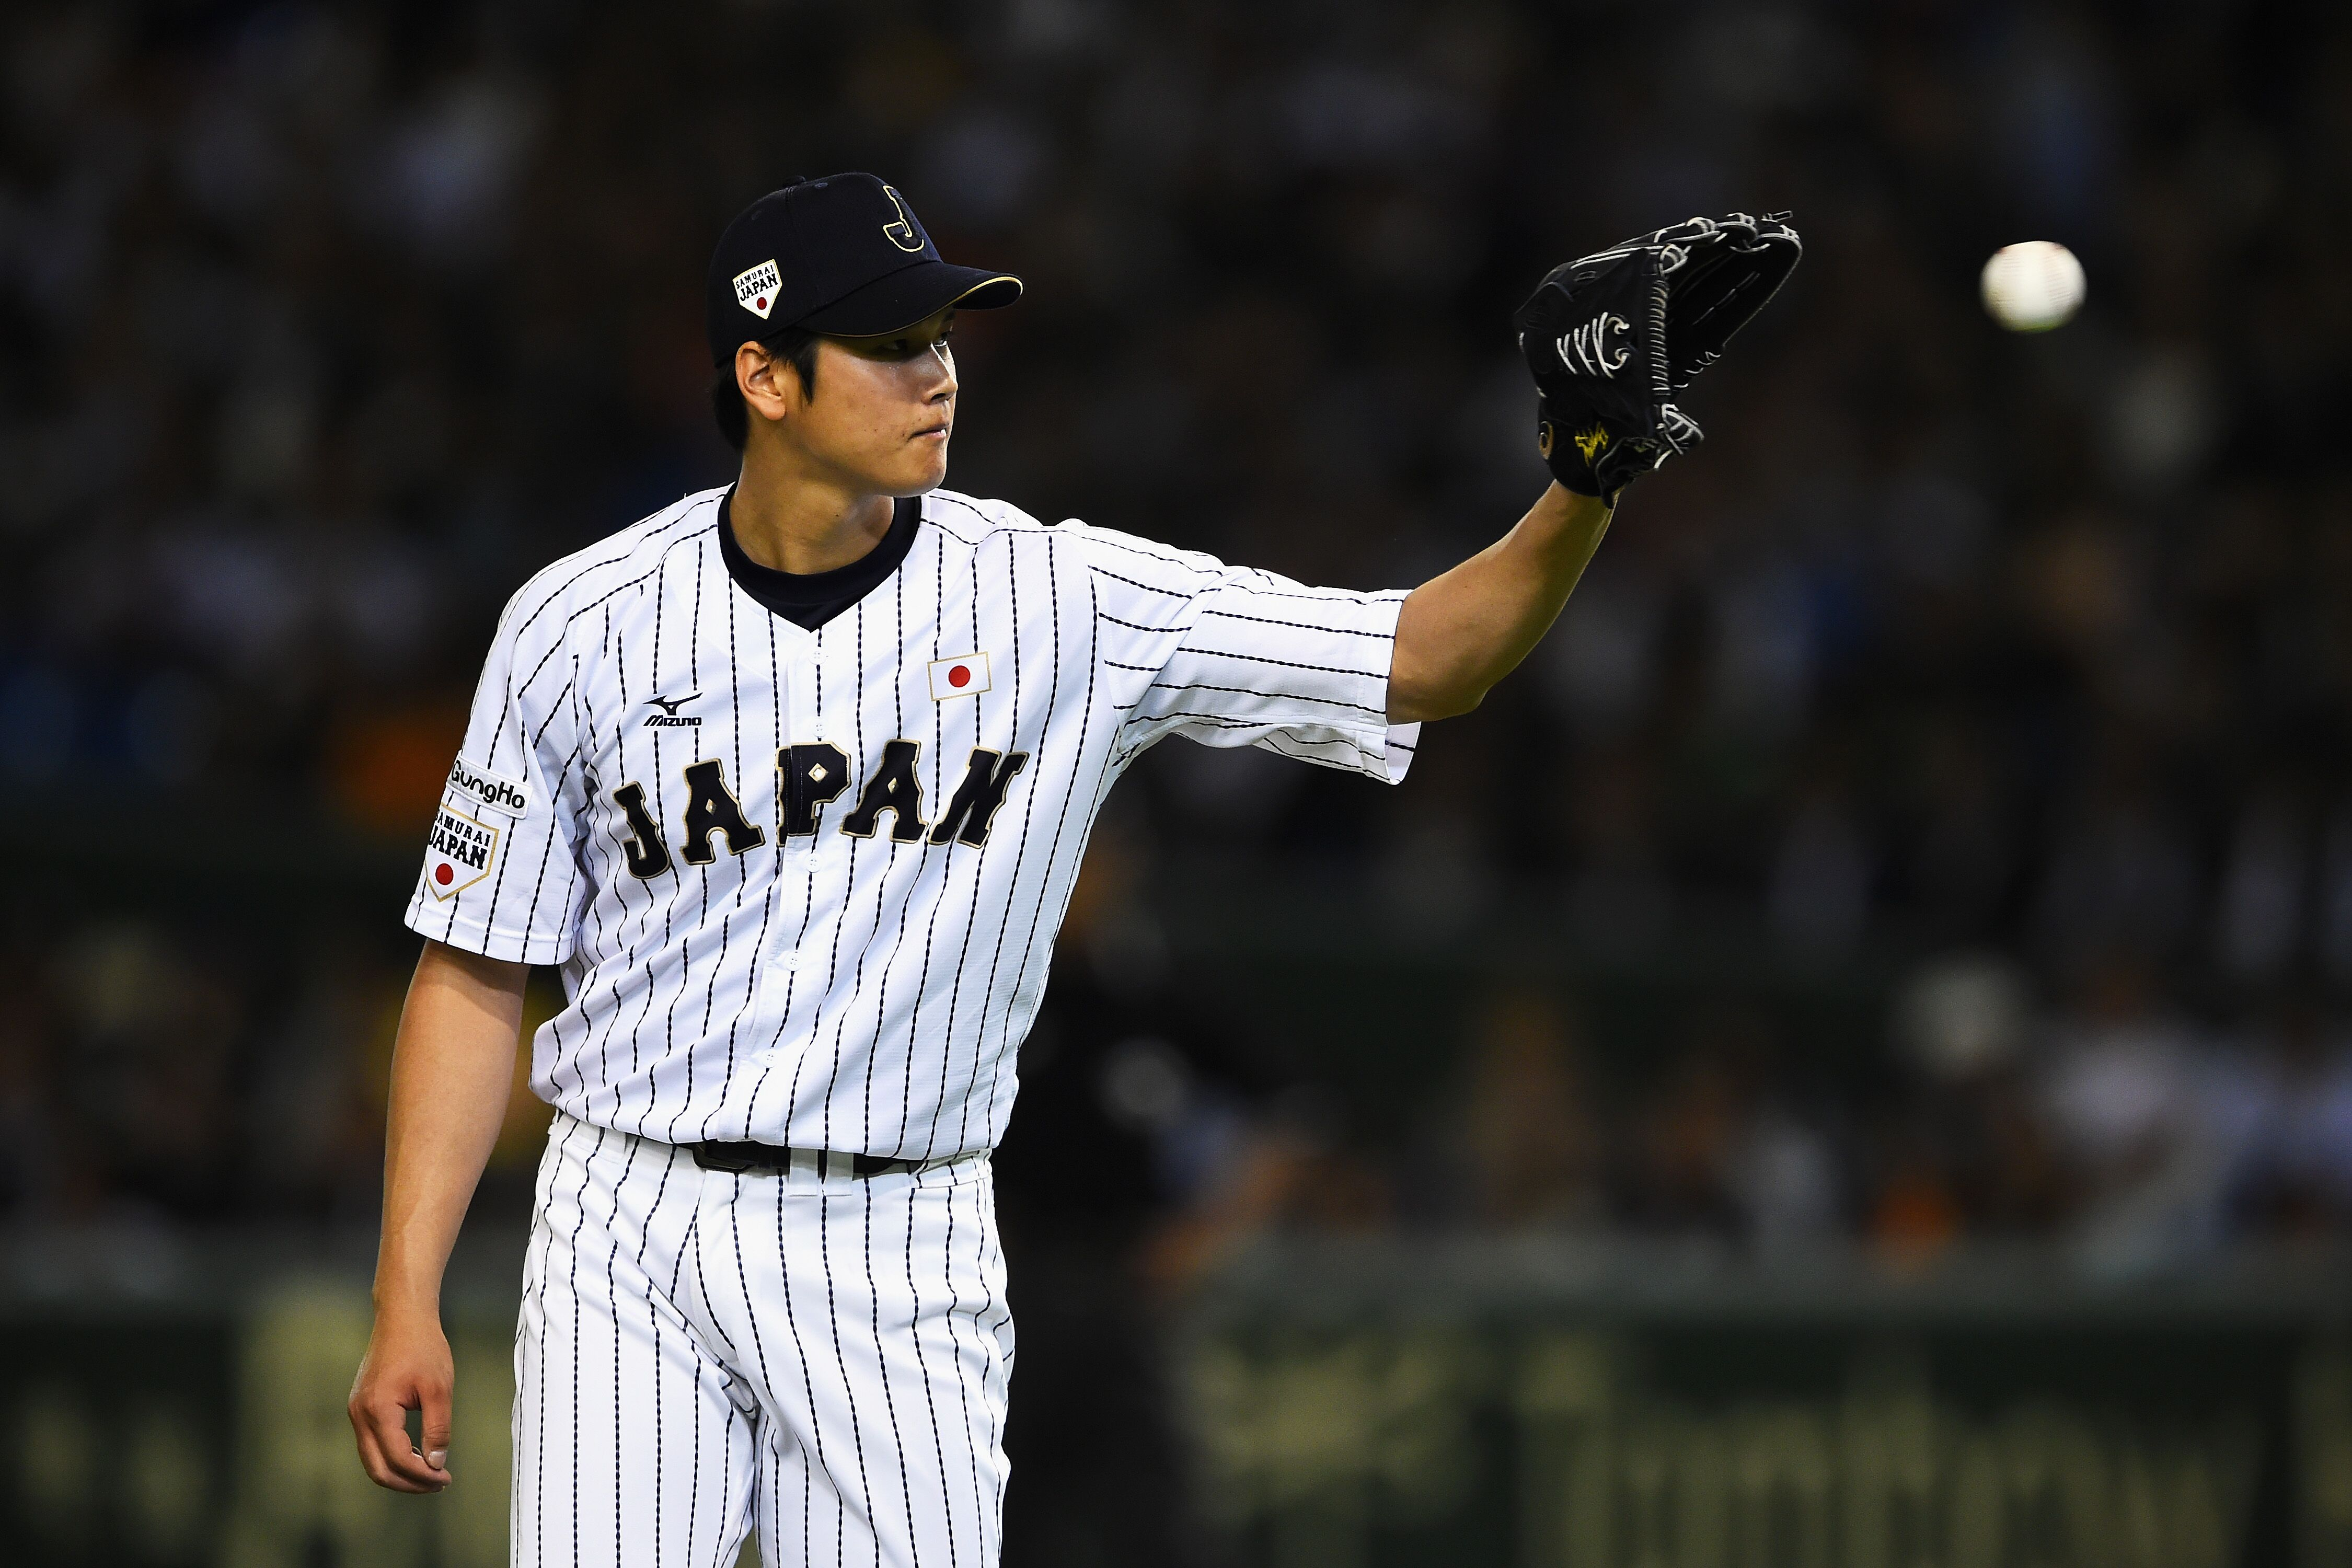 Giancarlo Stanton Stats 2017 >> Los Angeles Angels: Shohei Ohtani makes his choice to wear a halo